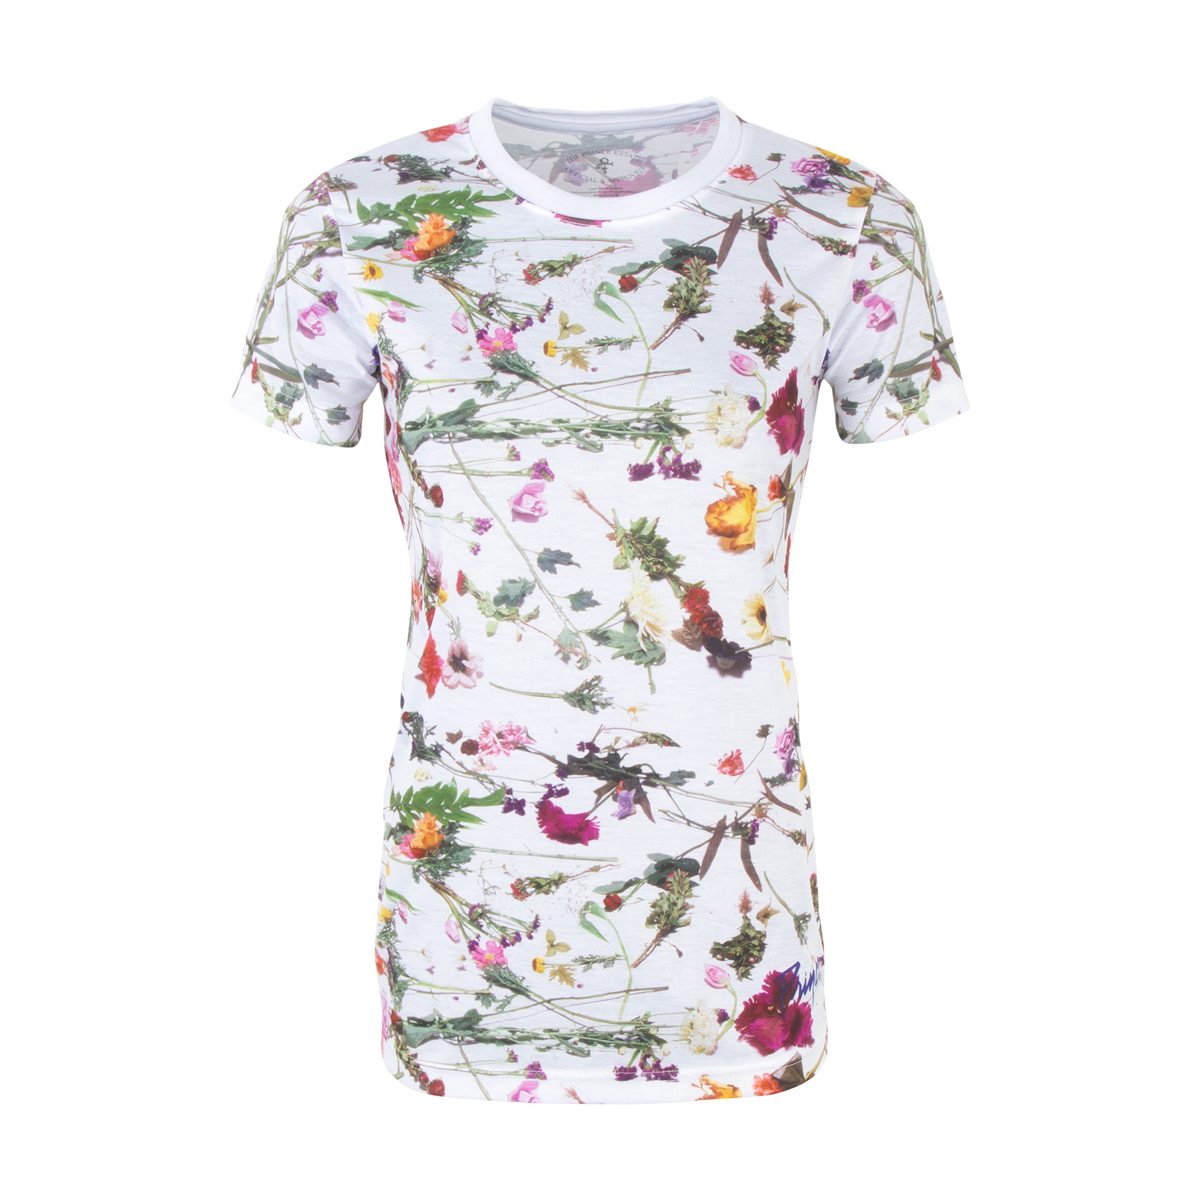 Purple Rain Floral Women's T-shirt